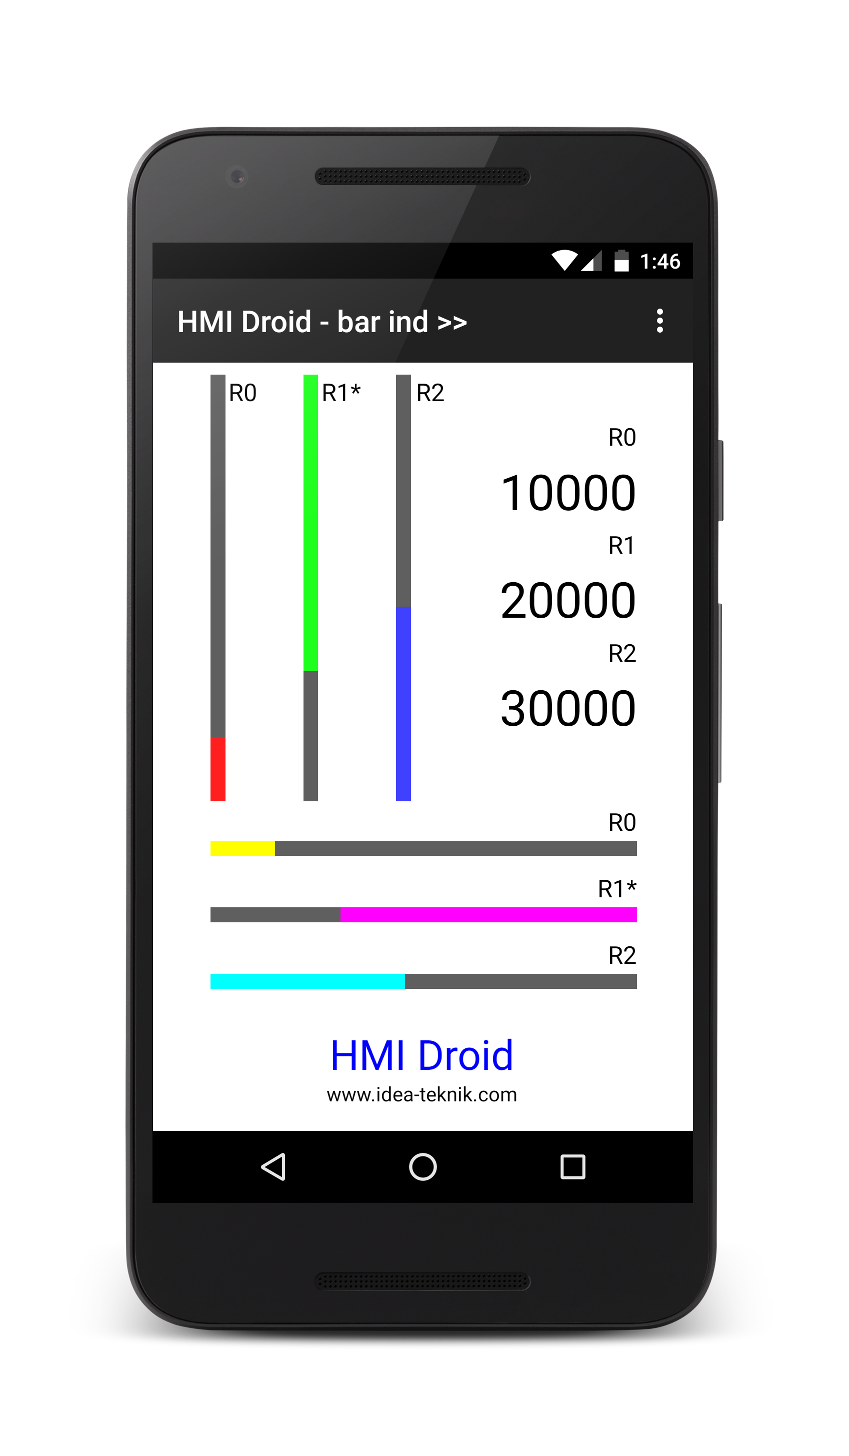 hmi droid bar indicator